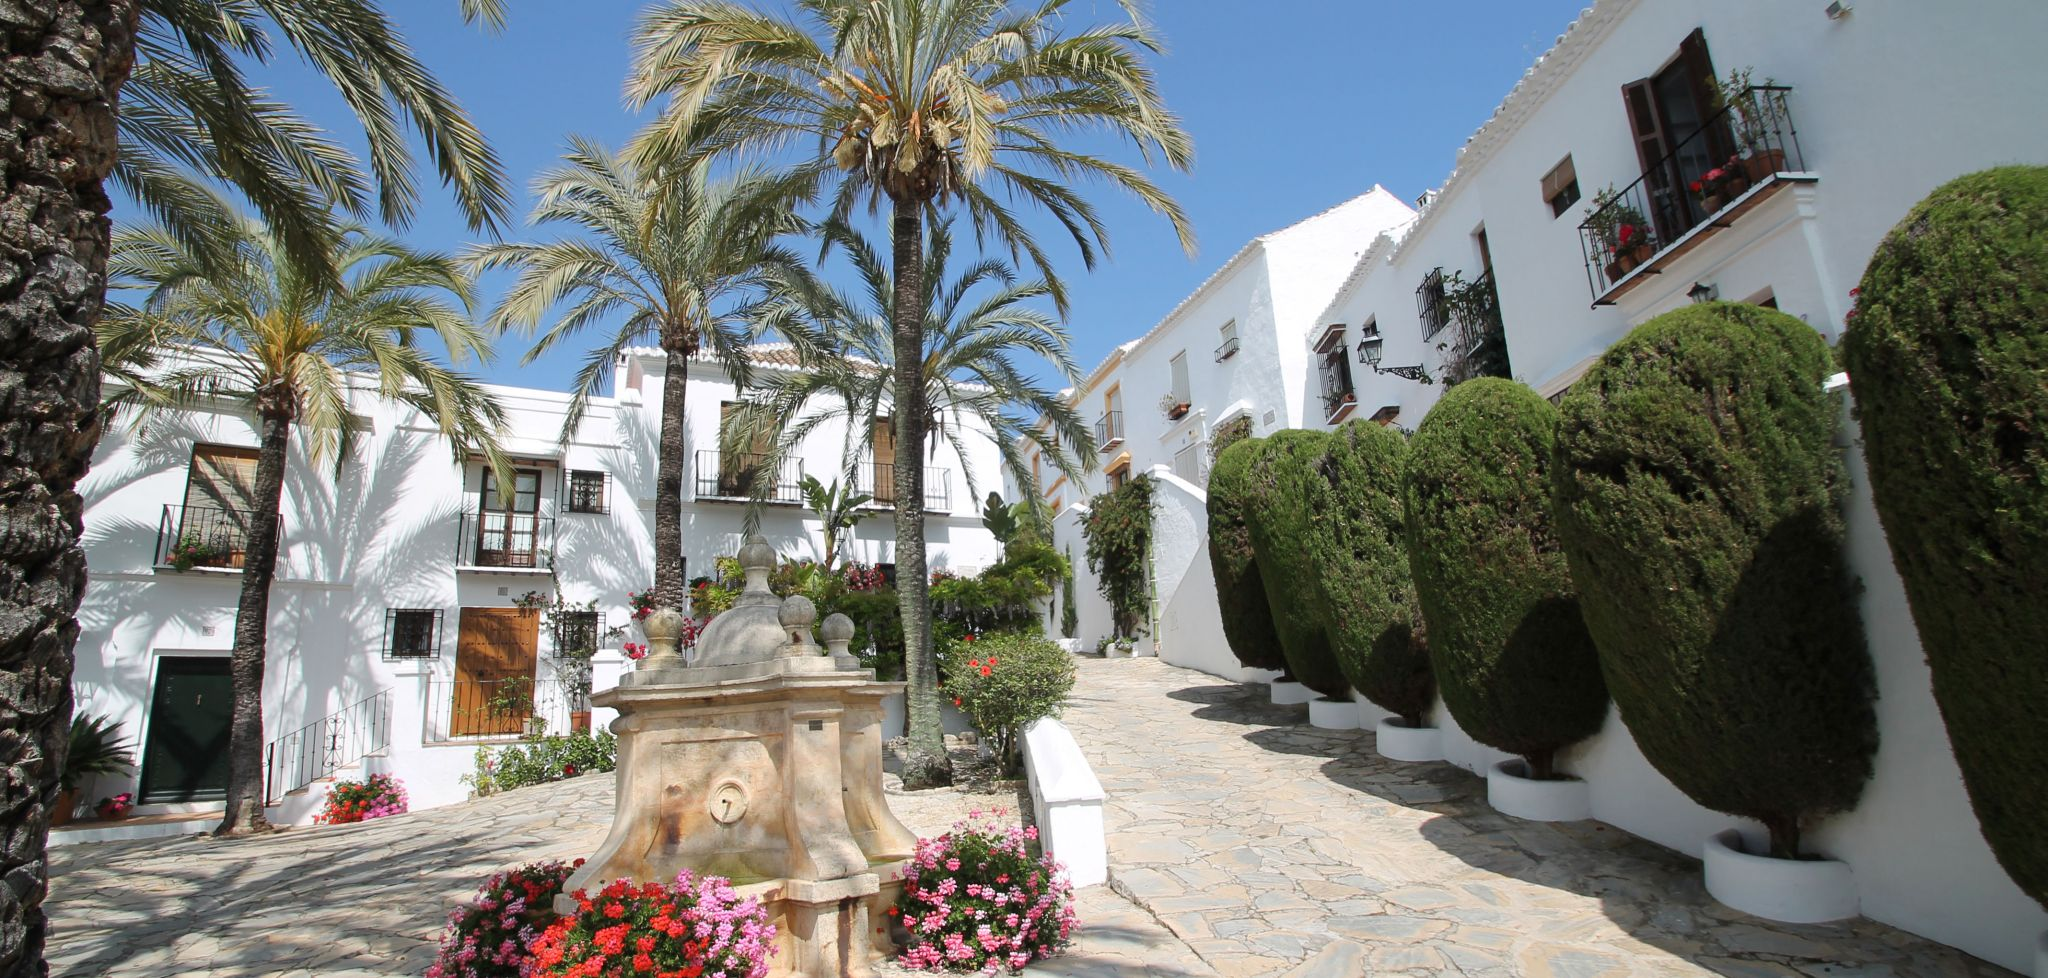 Fully renovated two bedroom townhouse on Marbella's Golden Mile